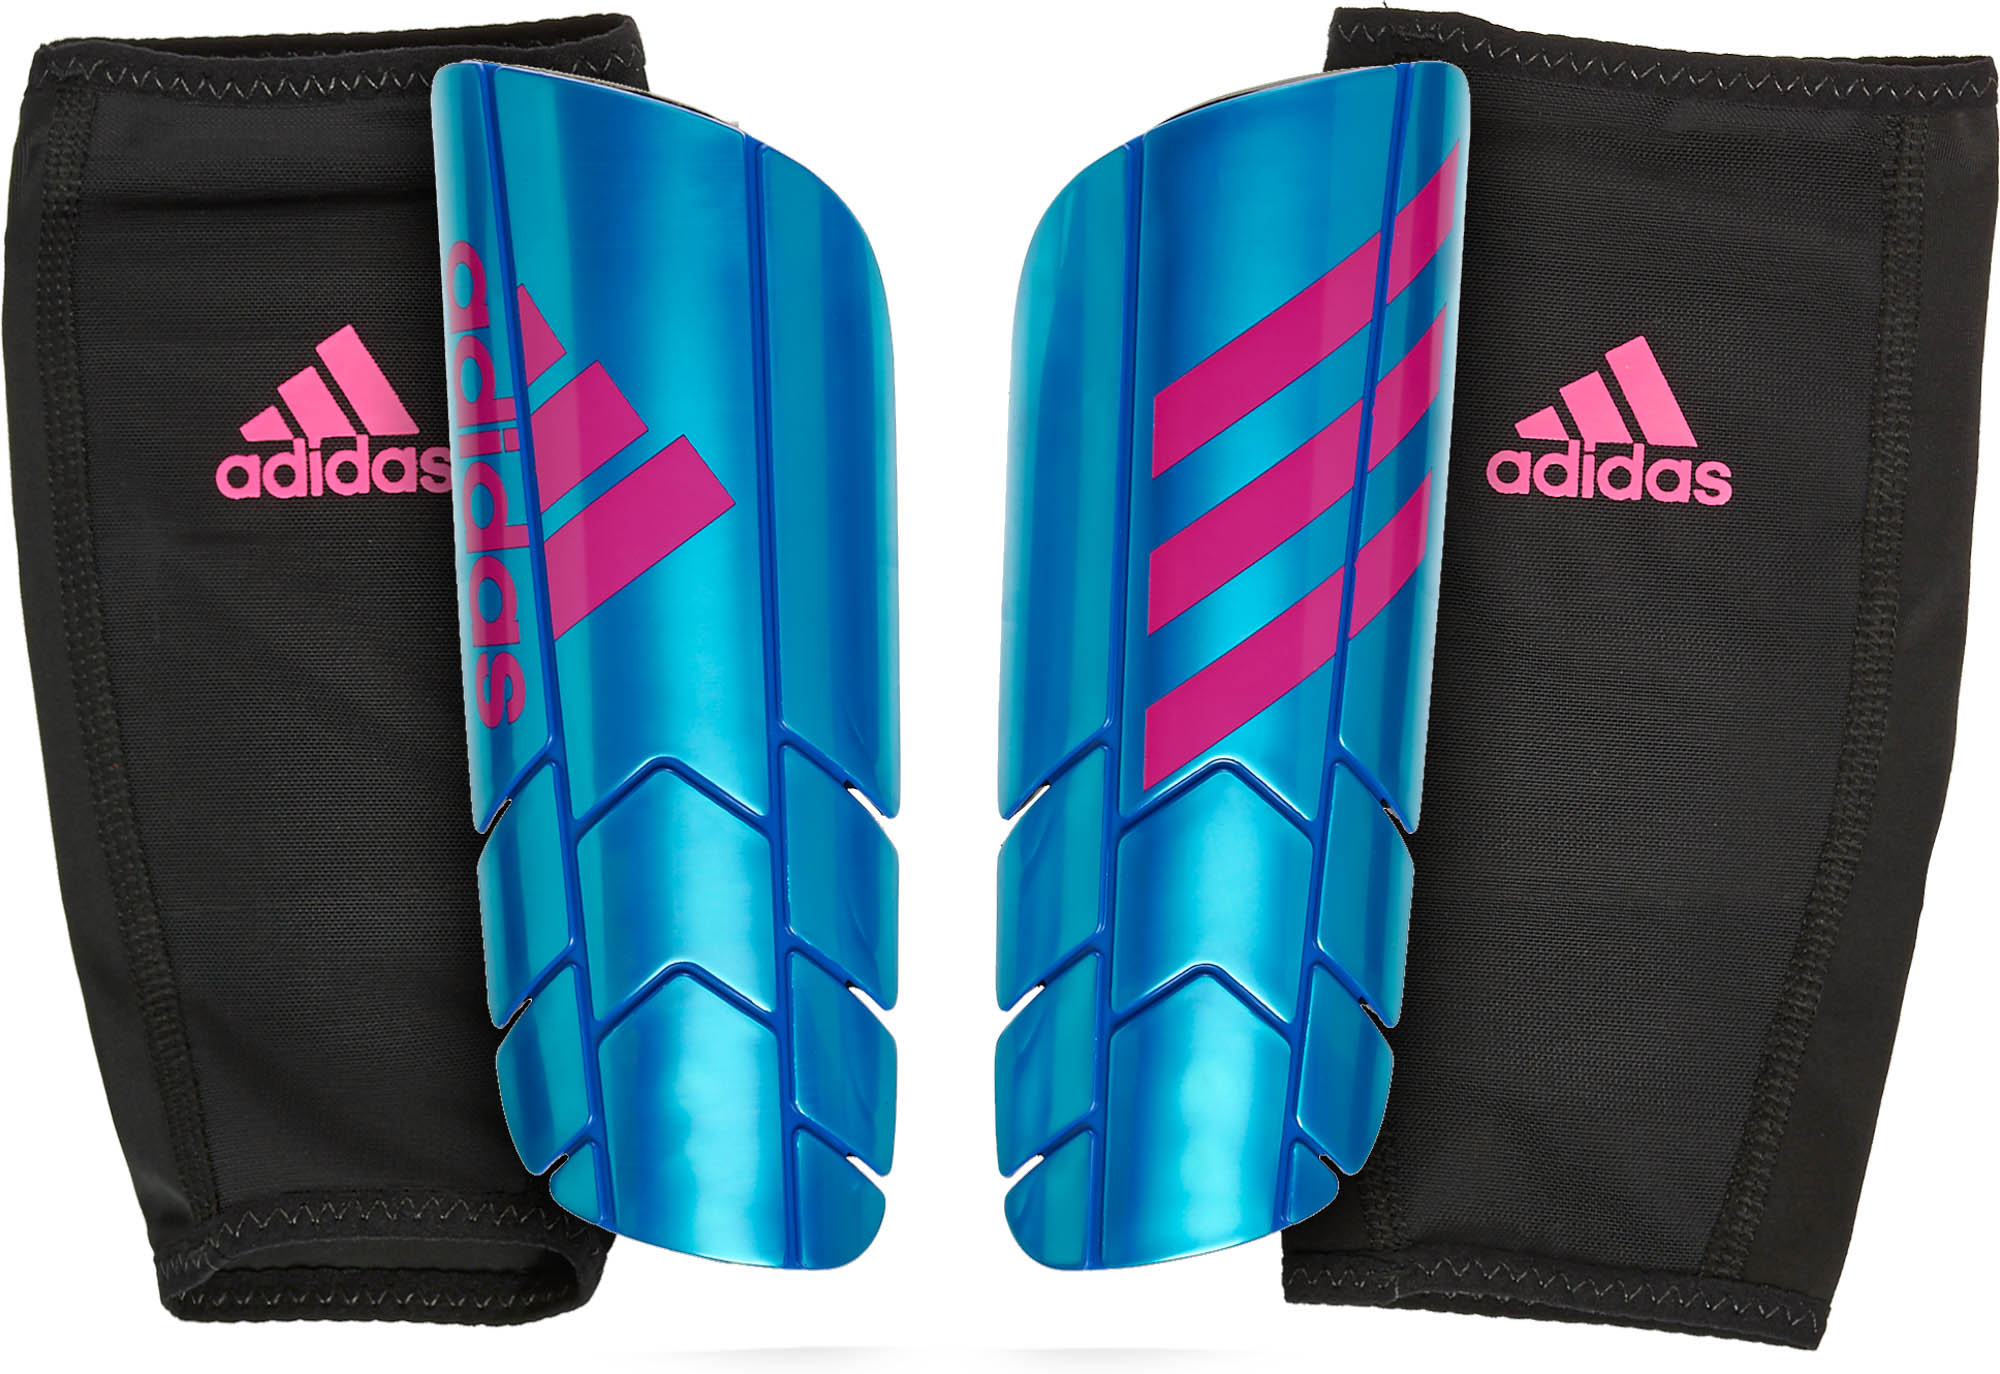 new arrival 5683a ca54c adidas Ghost Pro Shinguards - Blue   Shock Pink - Soccer Master